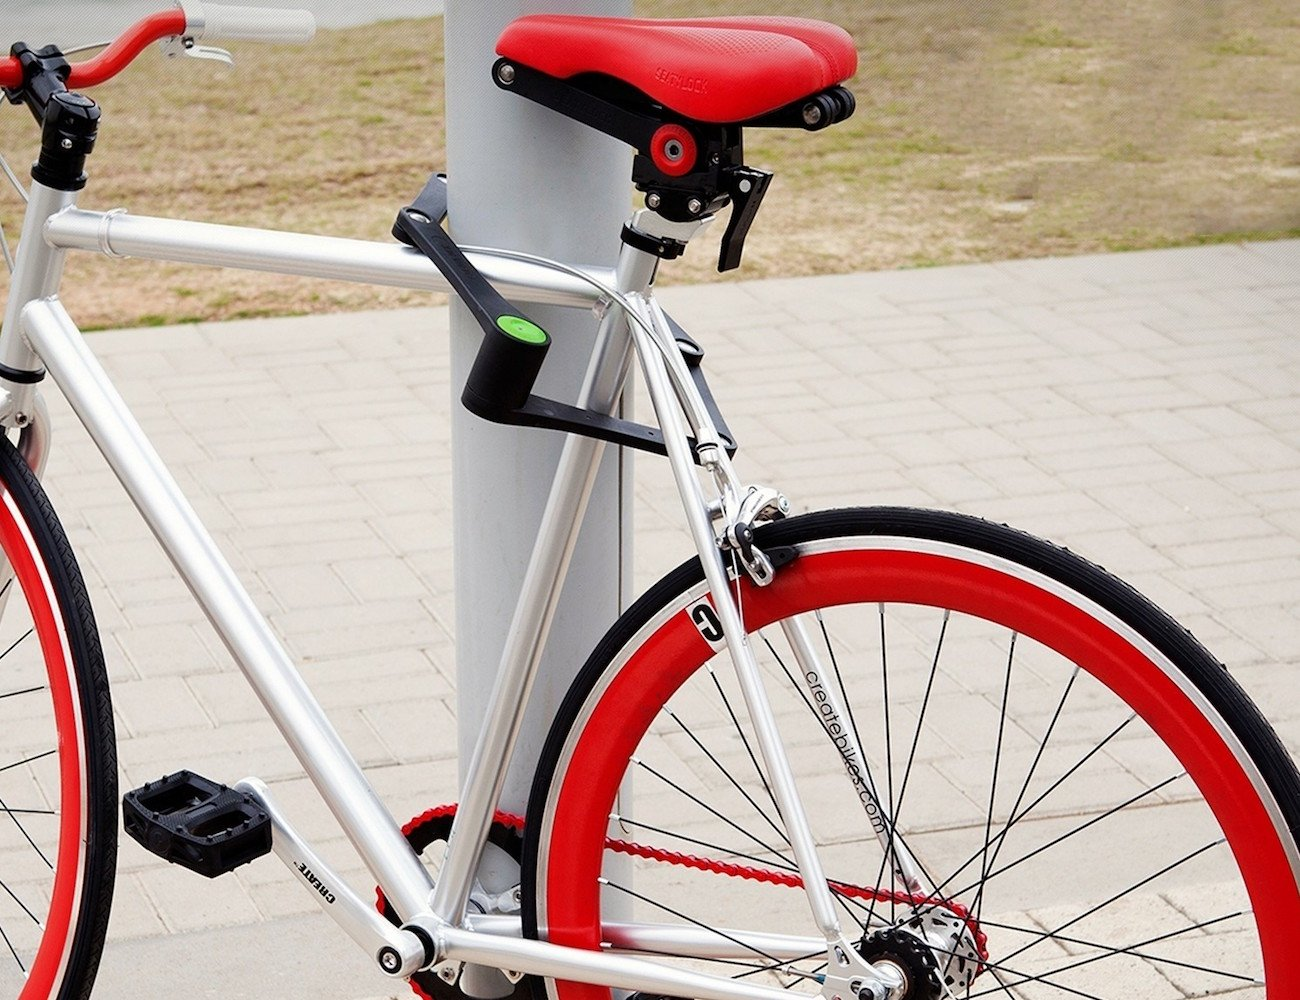 Foldylock – The Folding Bike Lock » Gadget Flow